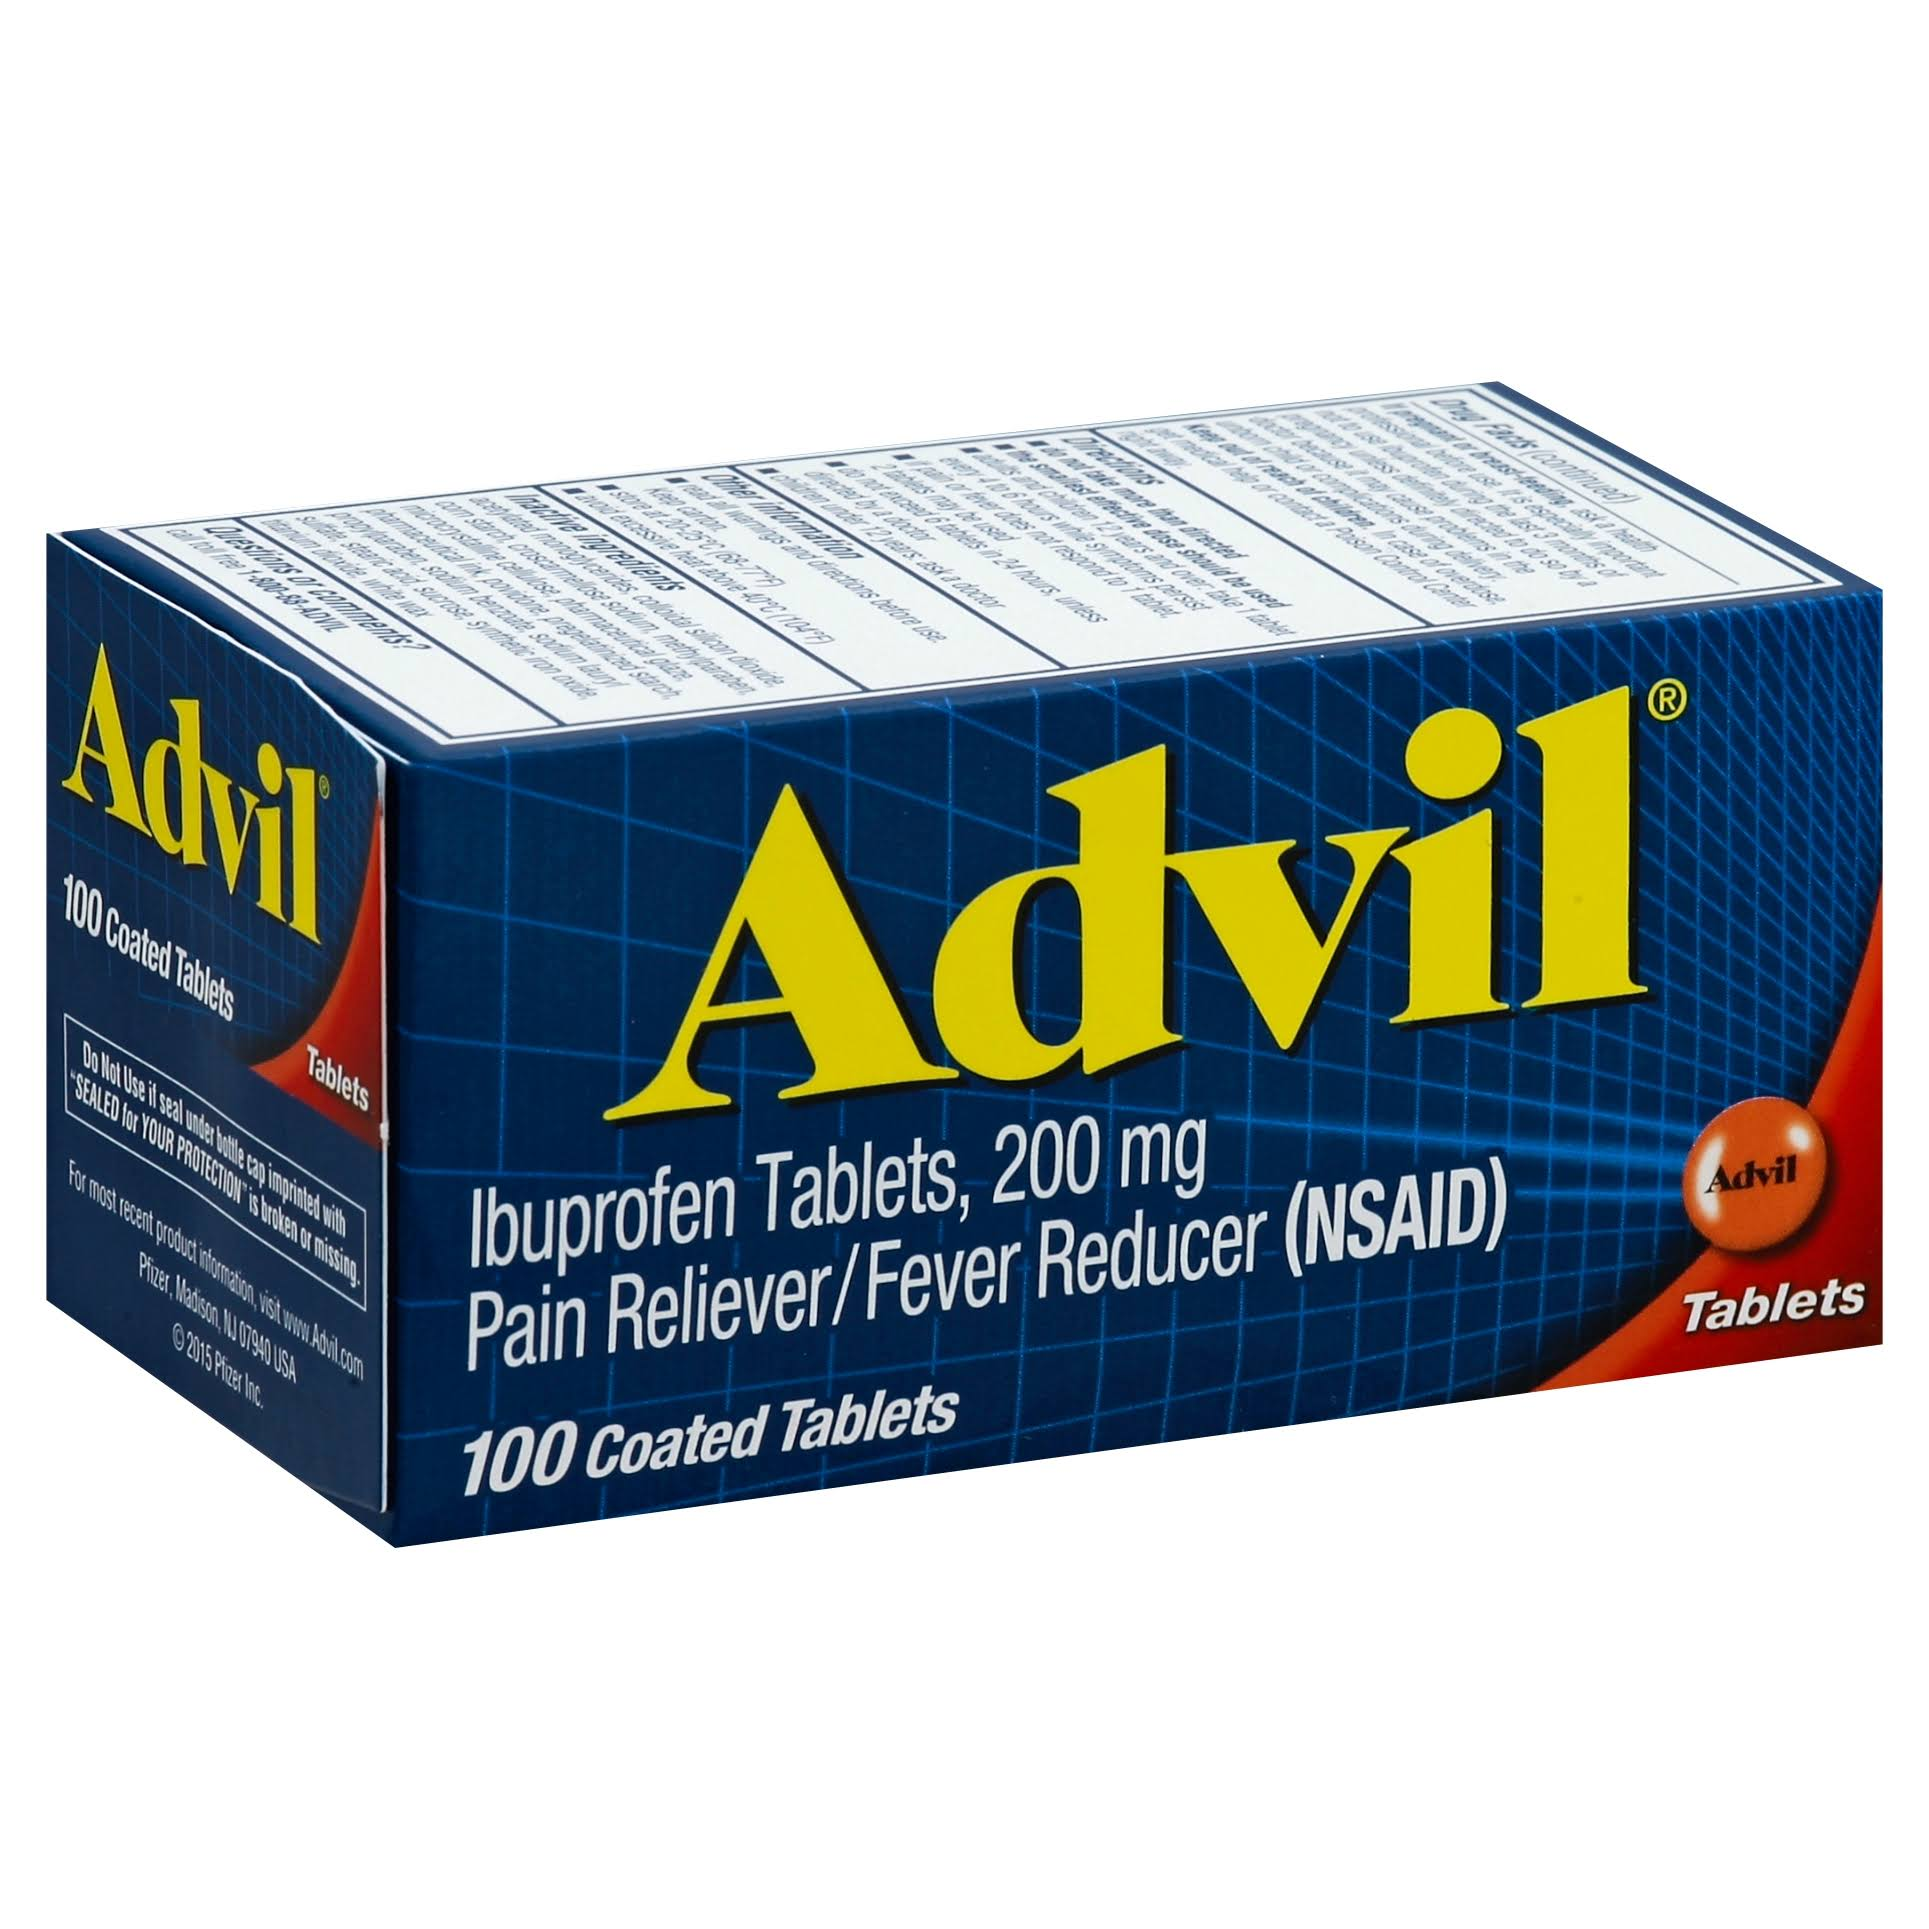 Advil Ibuprofen Pain Reliever and Fever Reducer - 200mg, 100 Coated Tablets